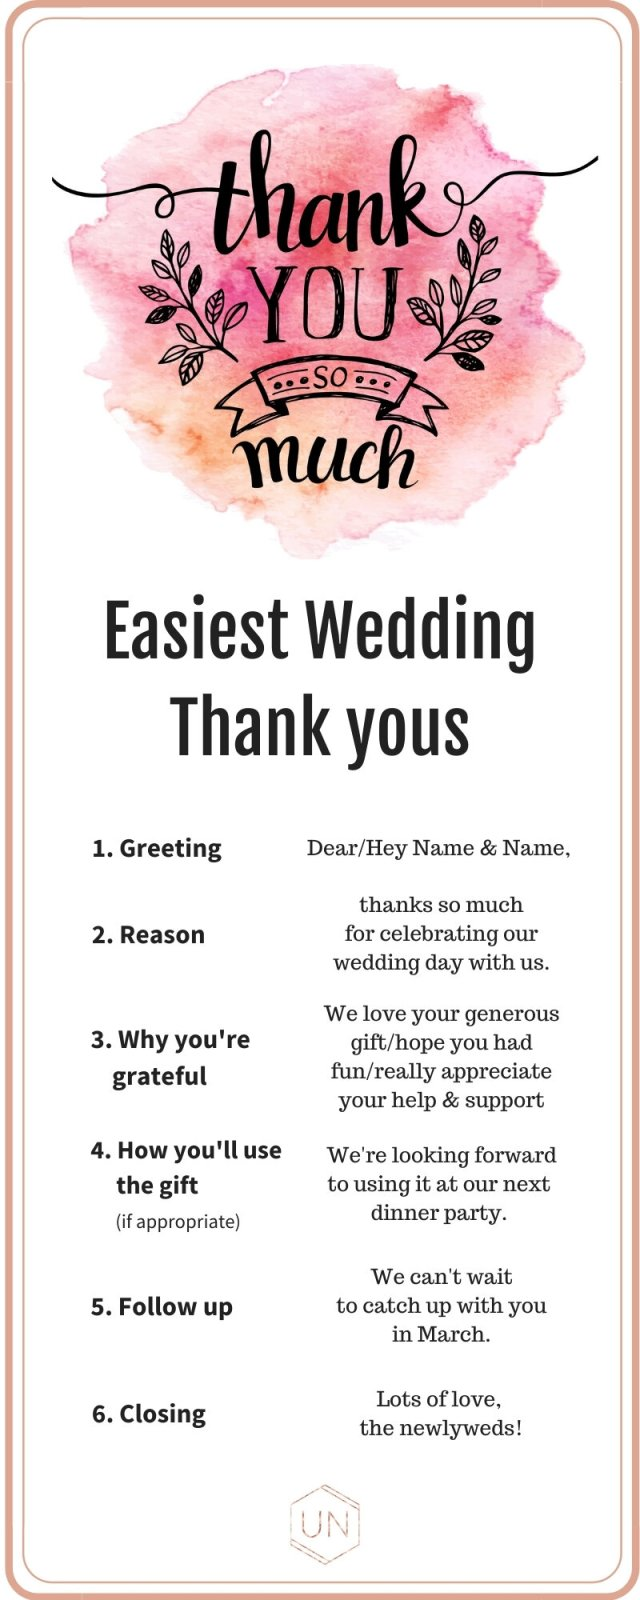 Wedding thank you card wording template — unbridely